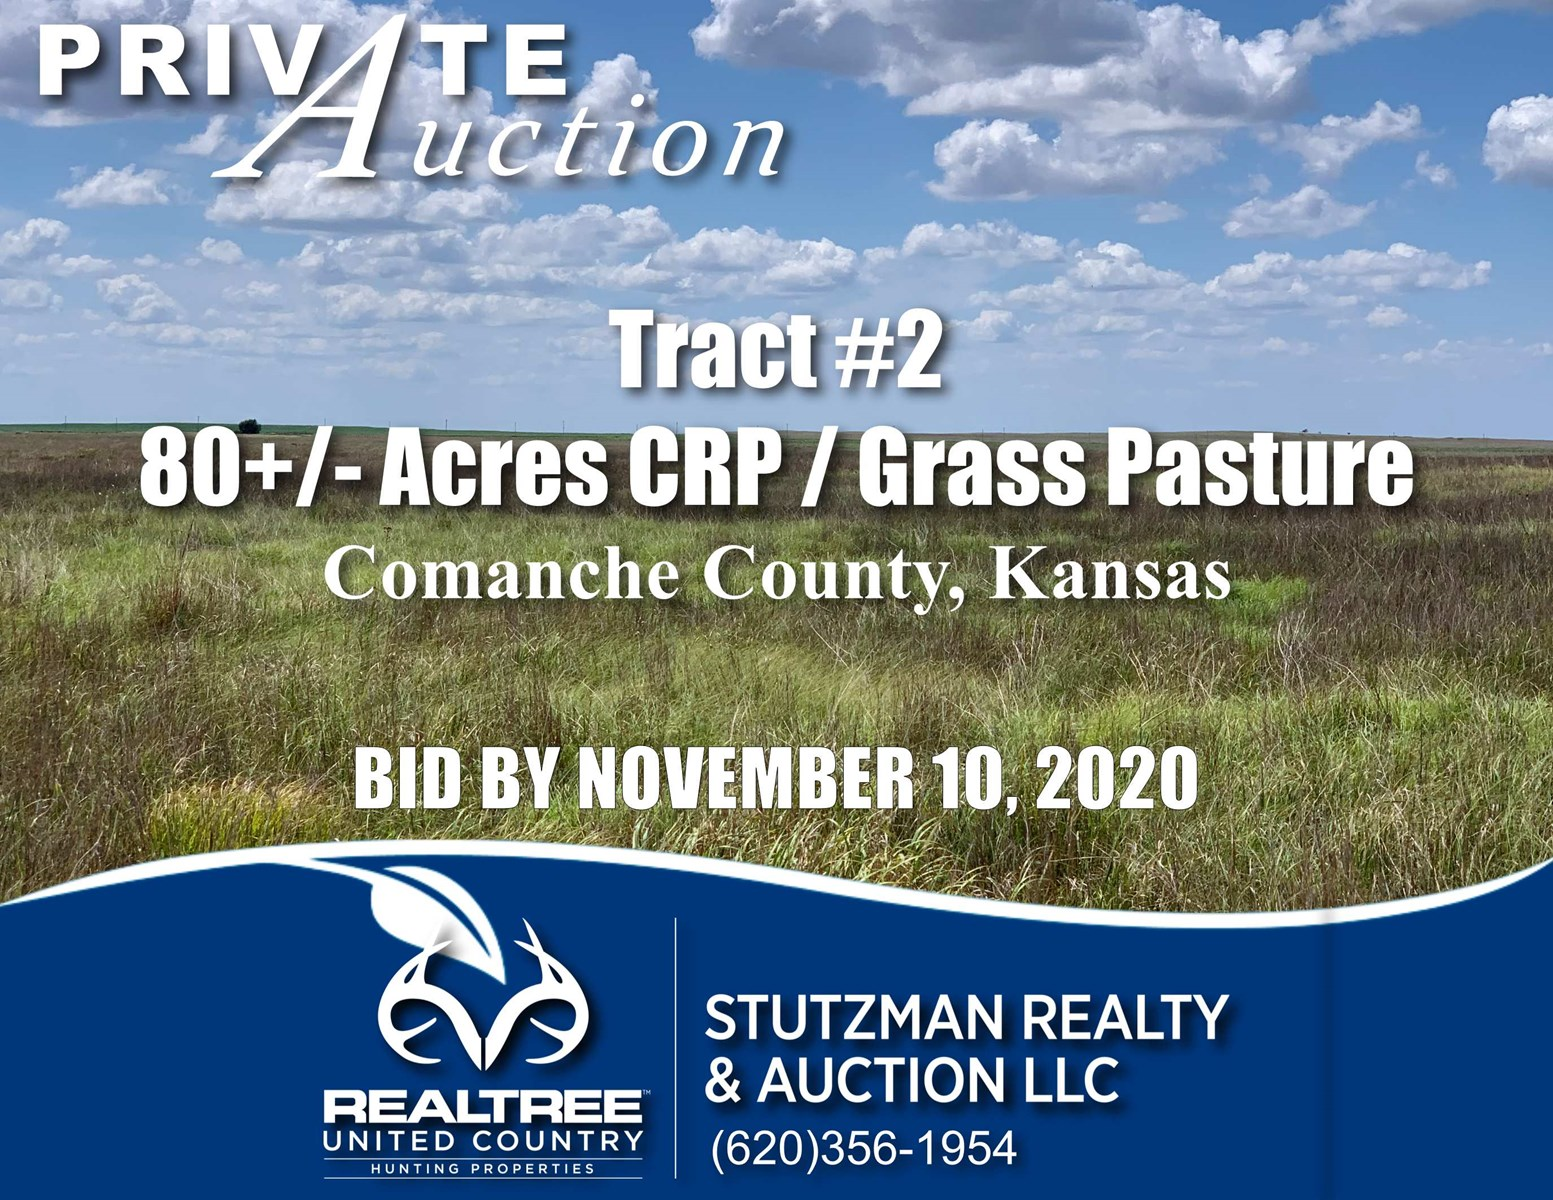 COMANCHE COUNTY, KANSAS ~ 80+/- ACRE ~ PRIVATE AUCTION